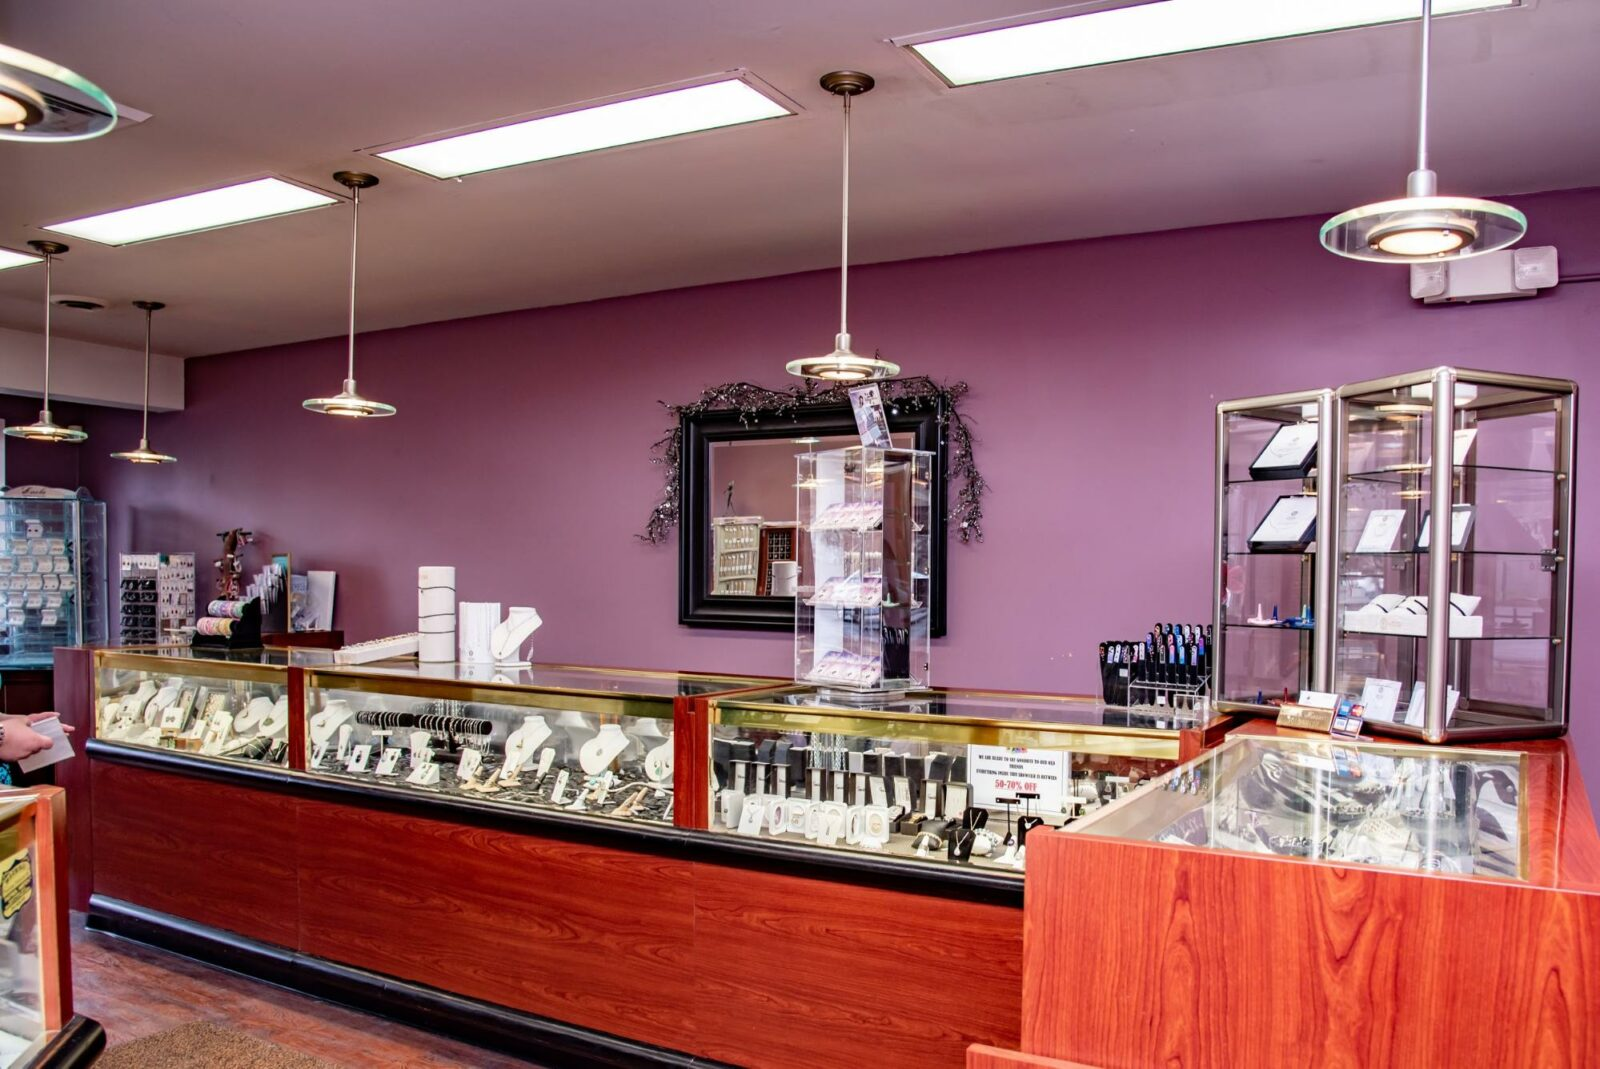 Interior of the store featuring jewelry display cases